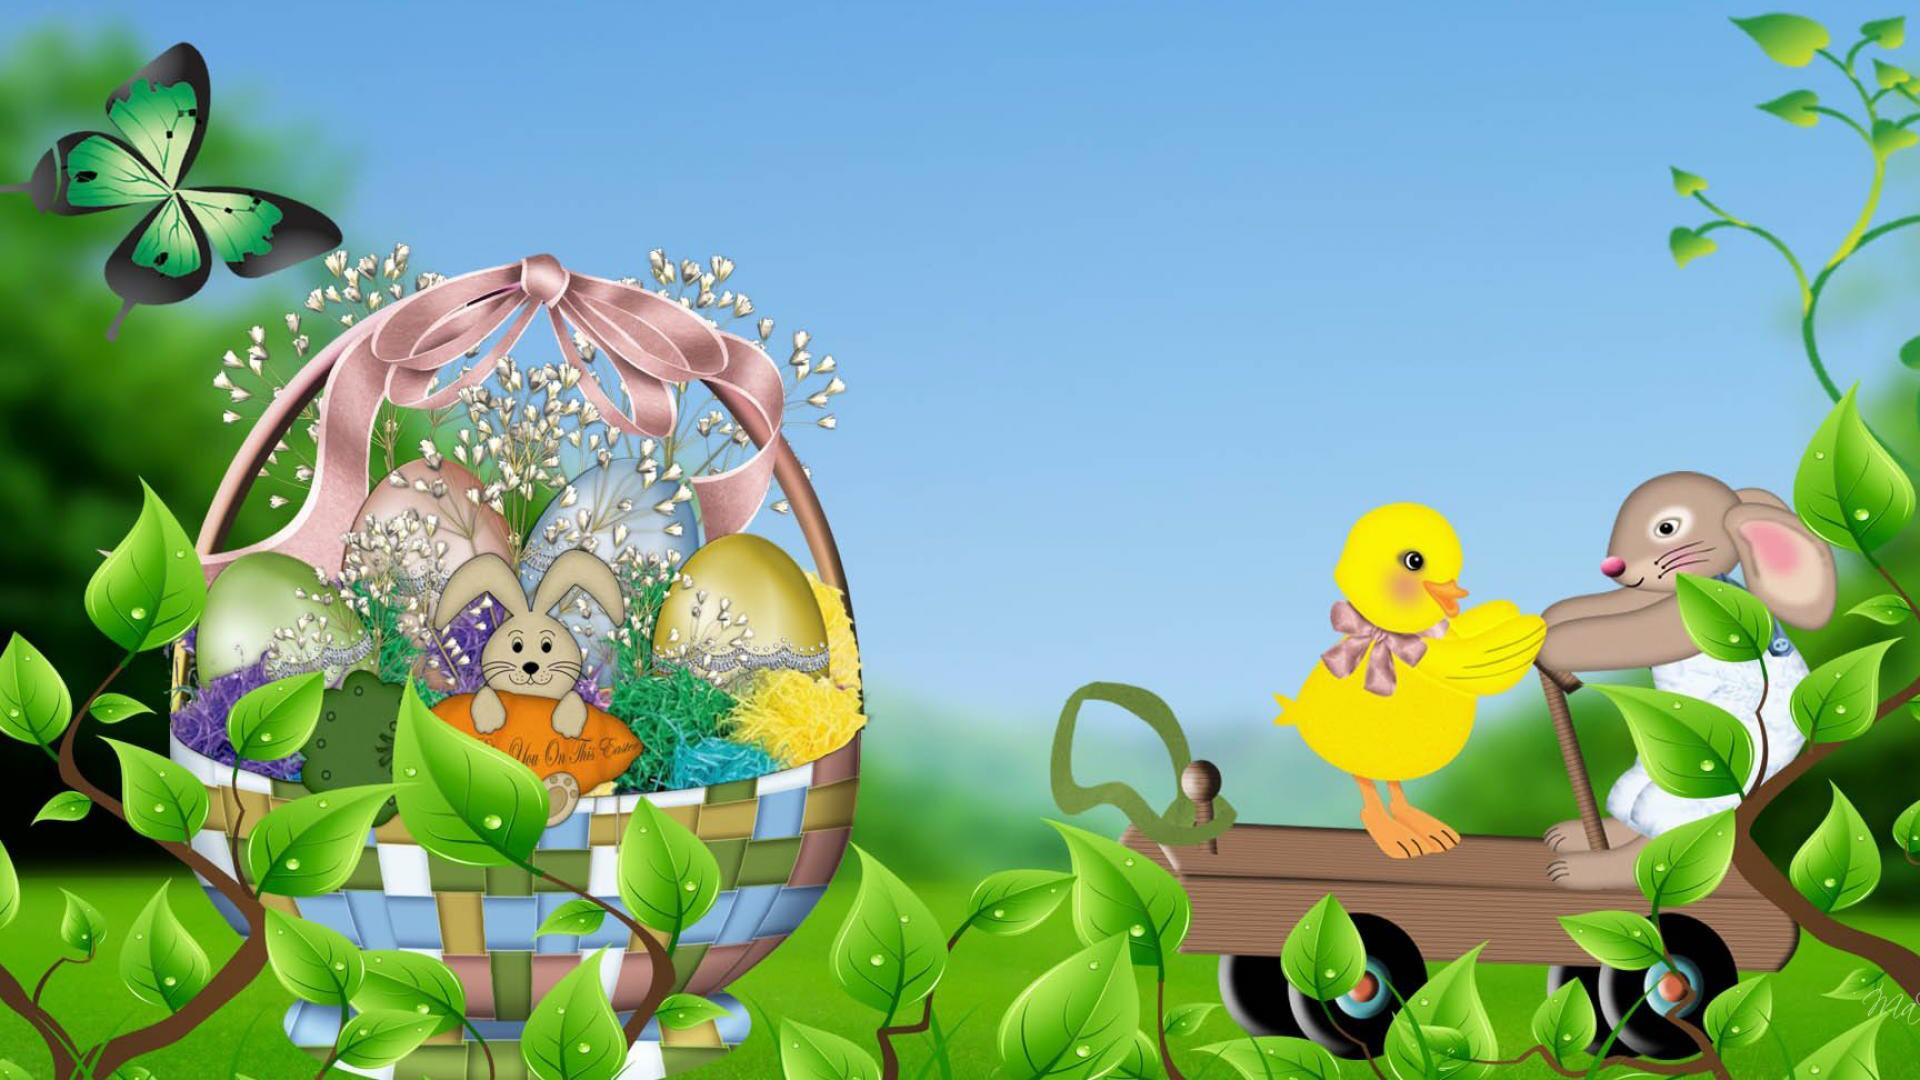 Disney Easter Wallpaper for Desktop - WallpaperSafari